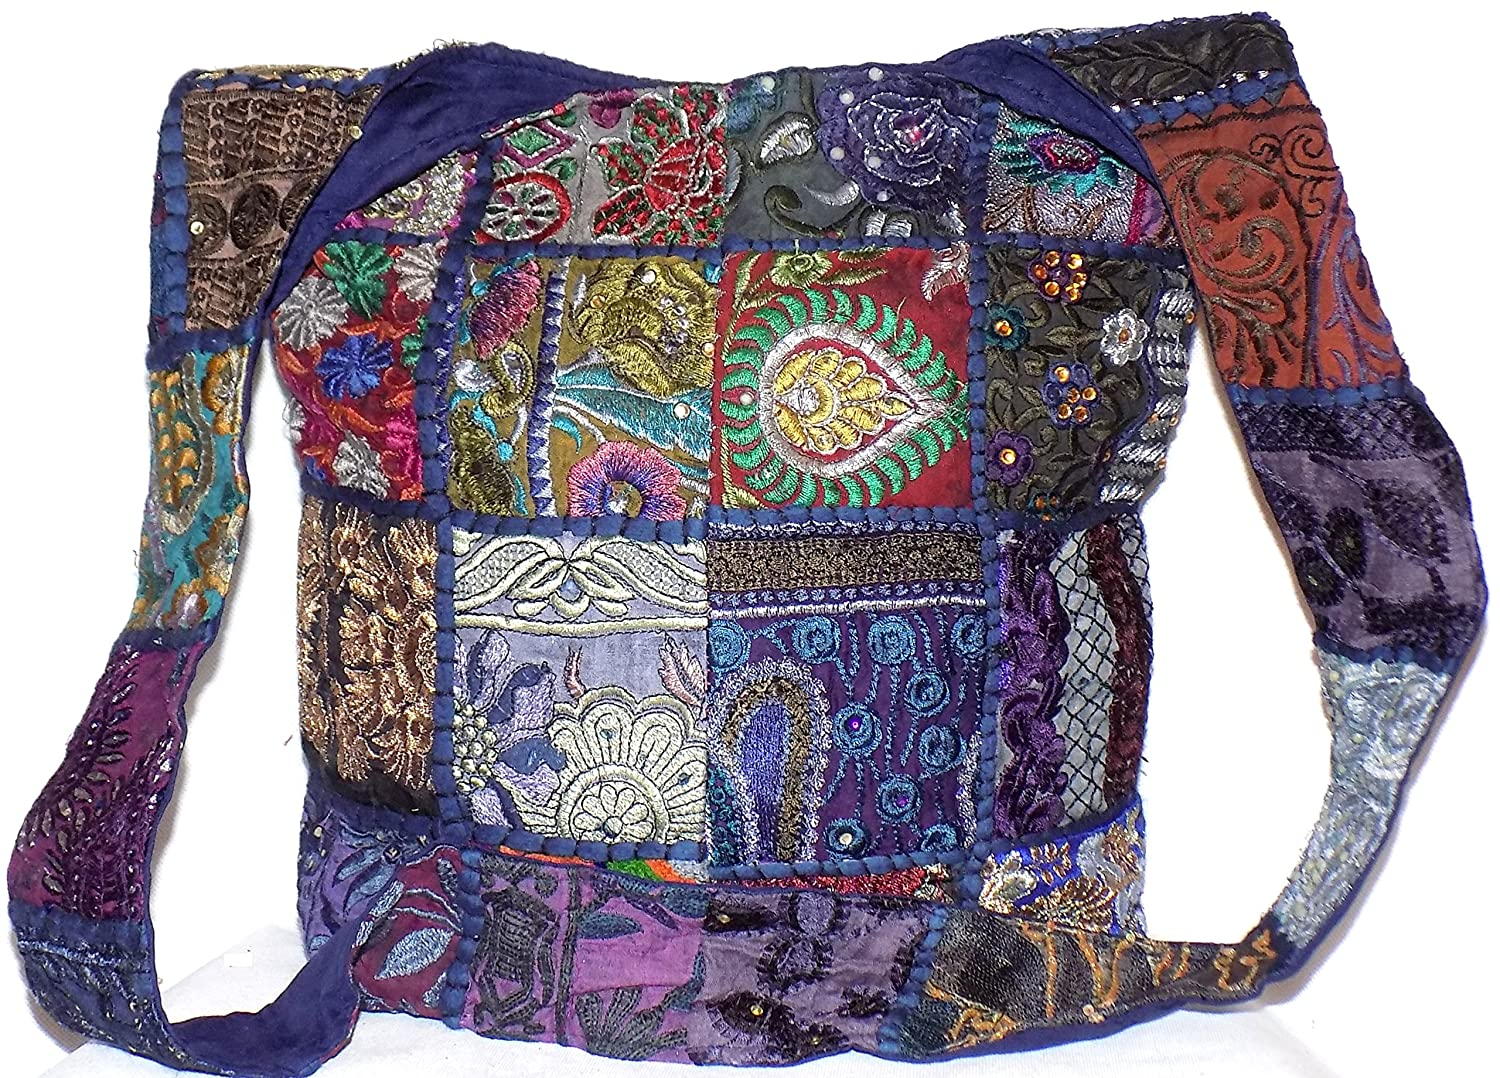 fbaf3e03f9 Patchwork Hippie Bag Navy Dark Blue   Multi Colour Patch Sequin Beads  Mirror Embroidered Large Cotton Boho Gypsy Hippy Sling Cross Body Festival  Beach ...